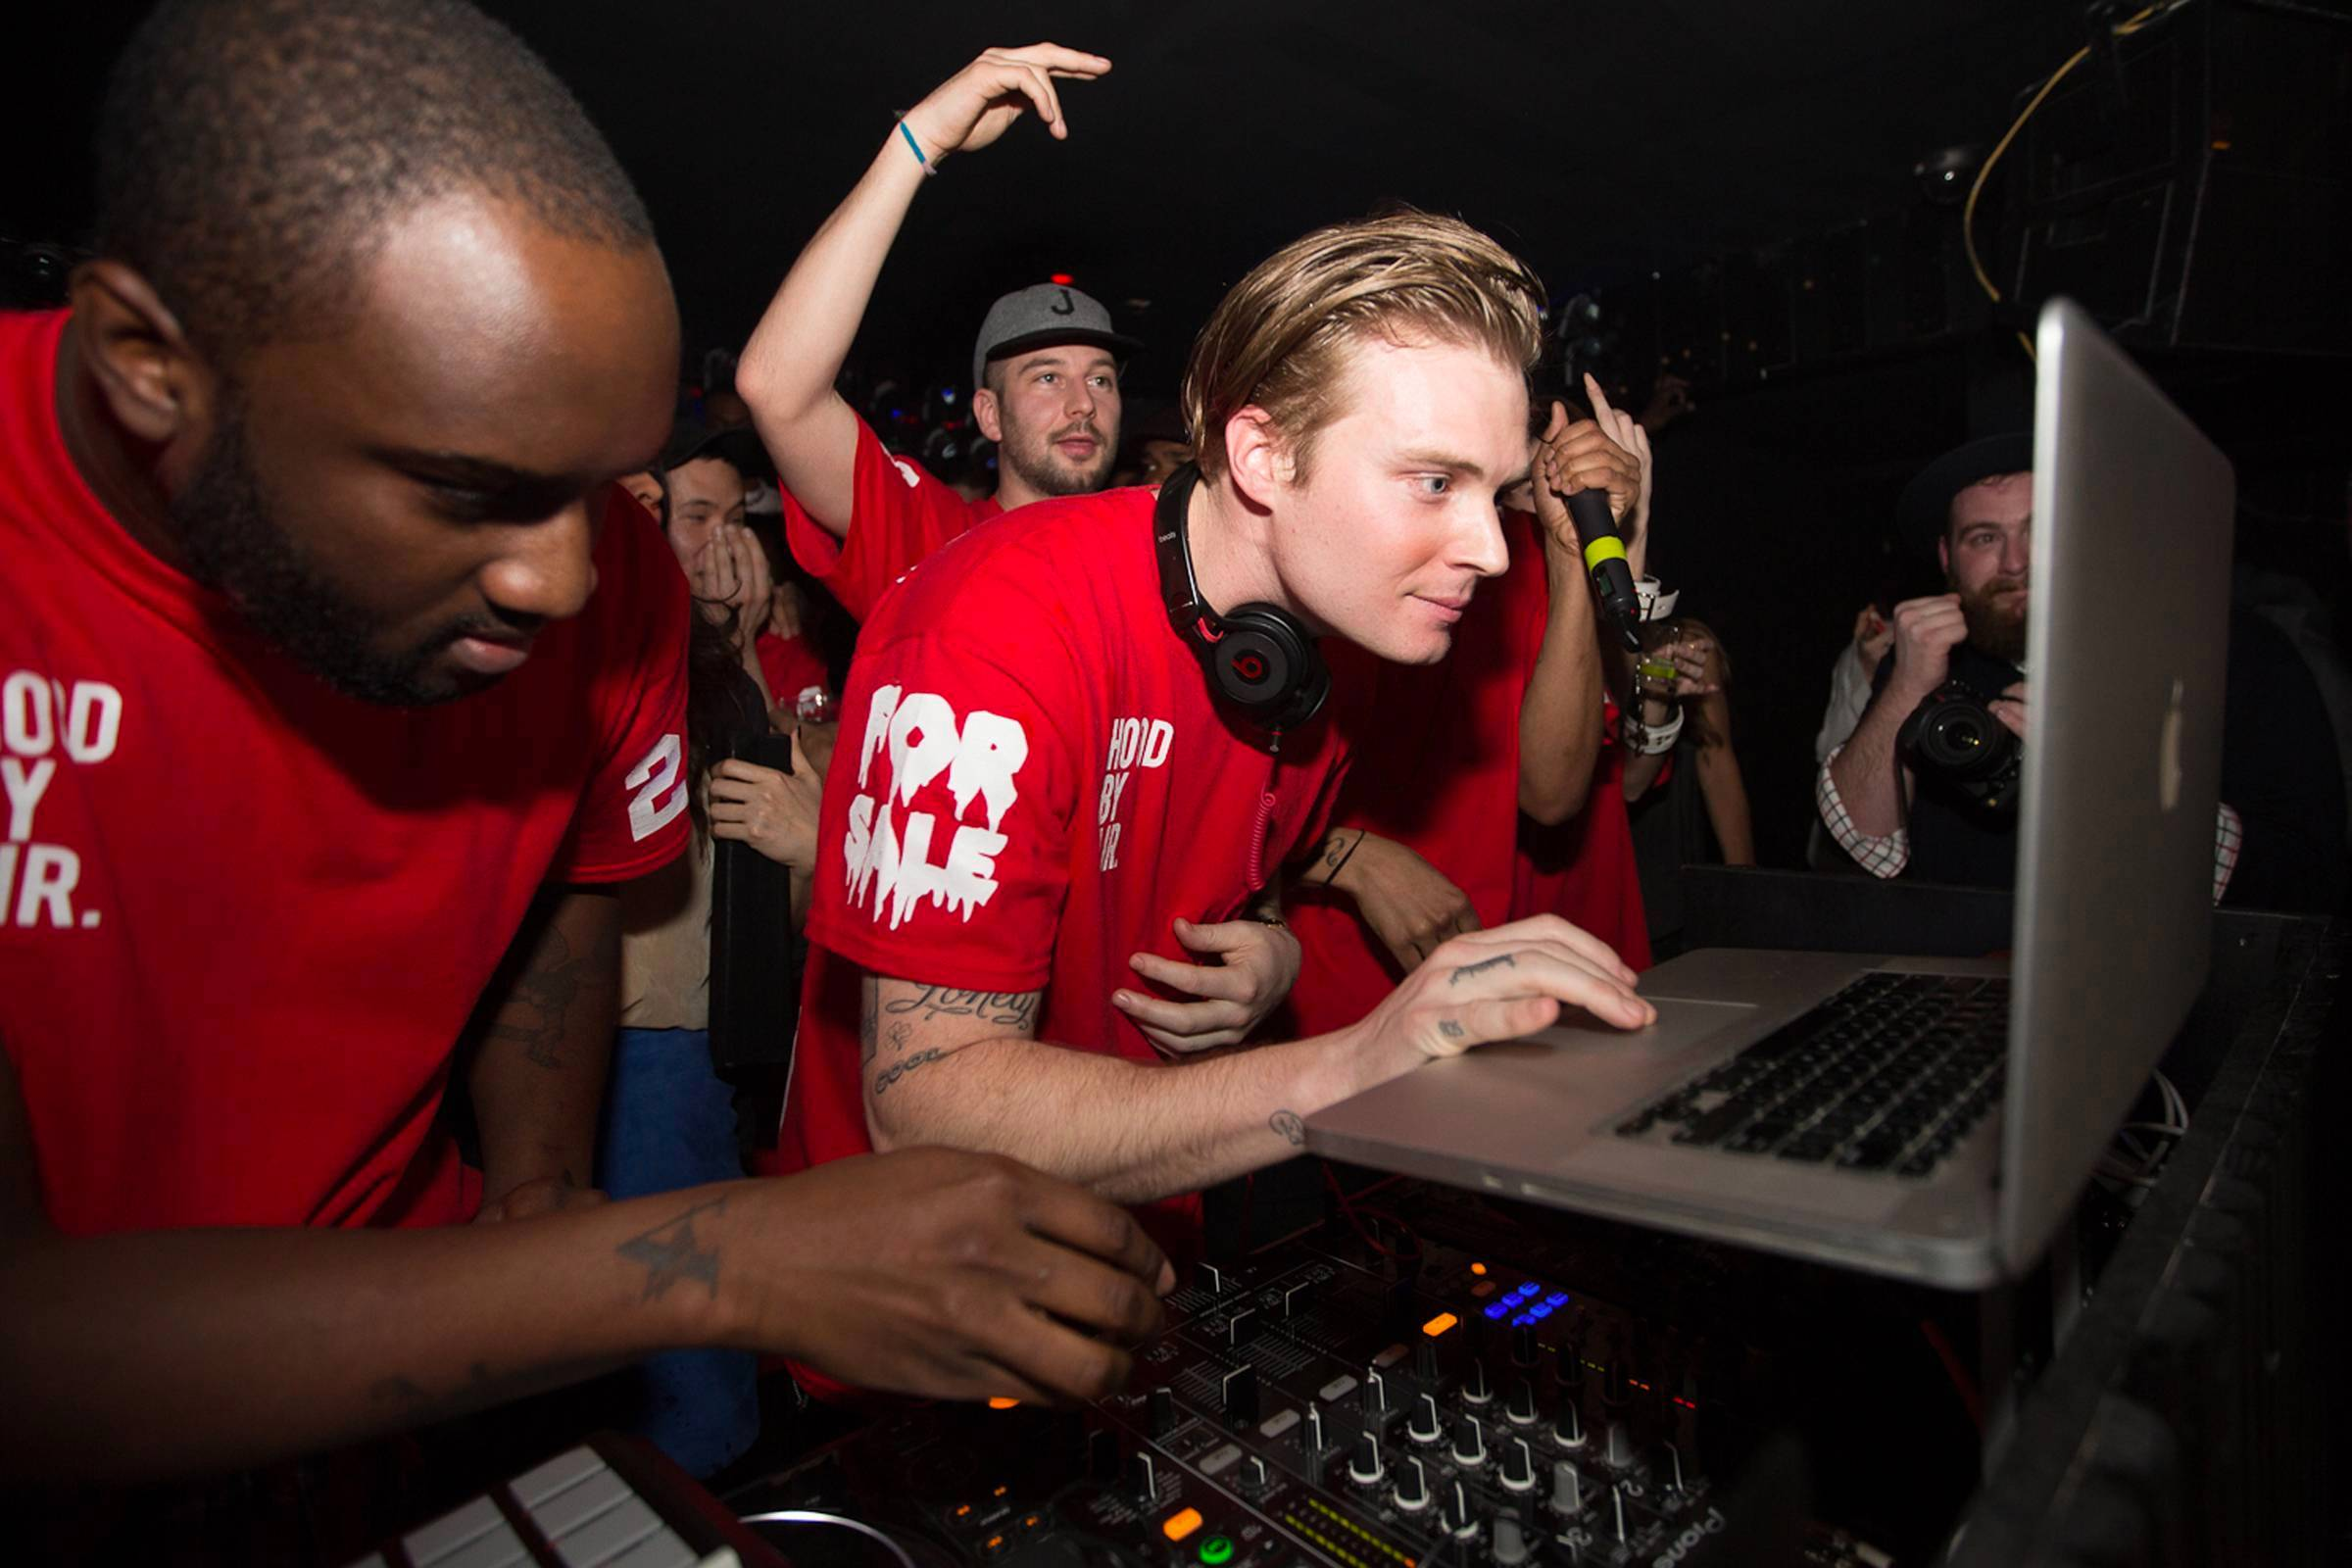 Virgil Abloh (left), Matthew Williams (center) and Justin Saunders (back, center) DJing at a #BEENTRILL# party